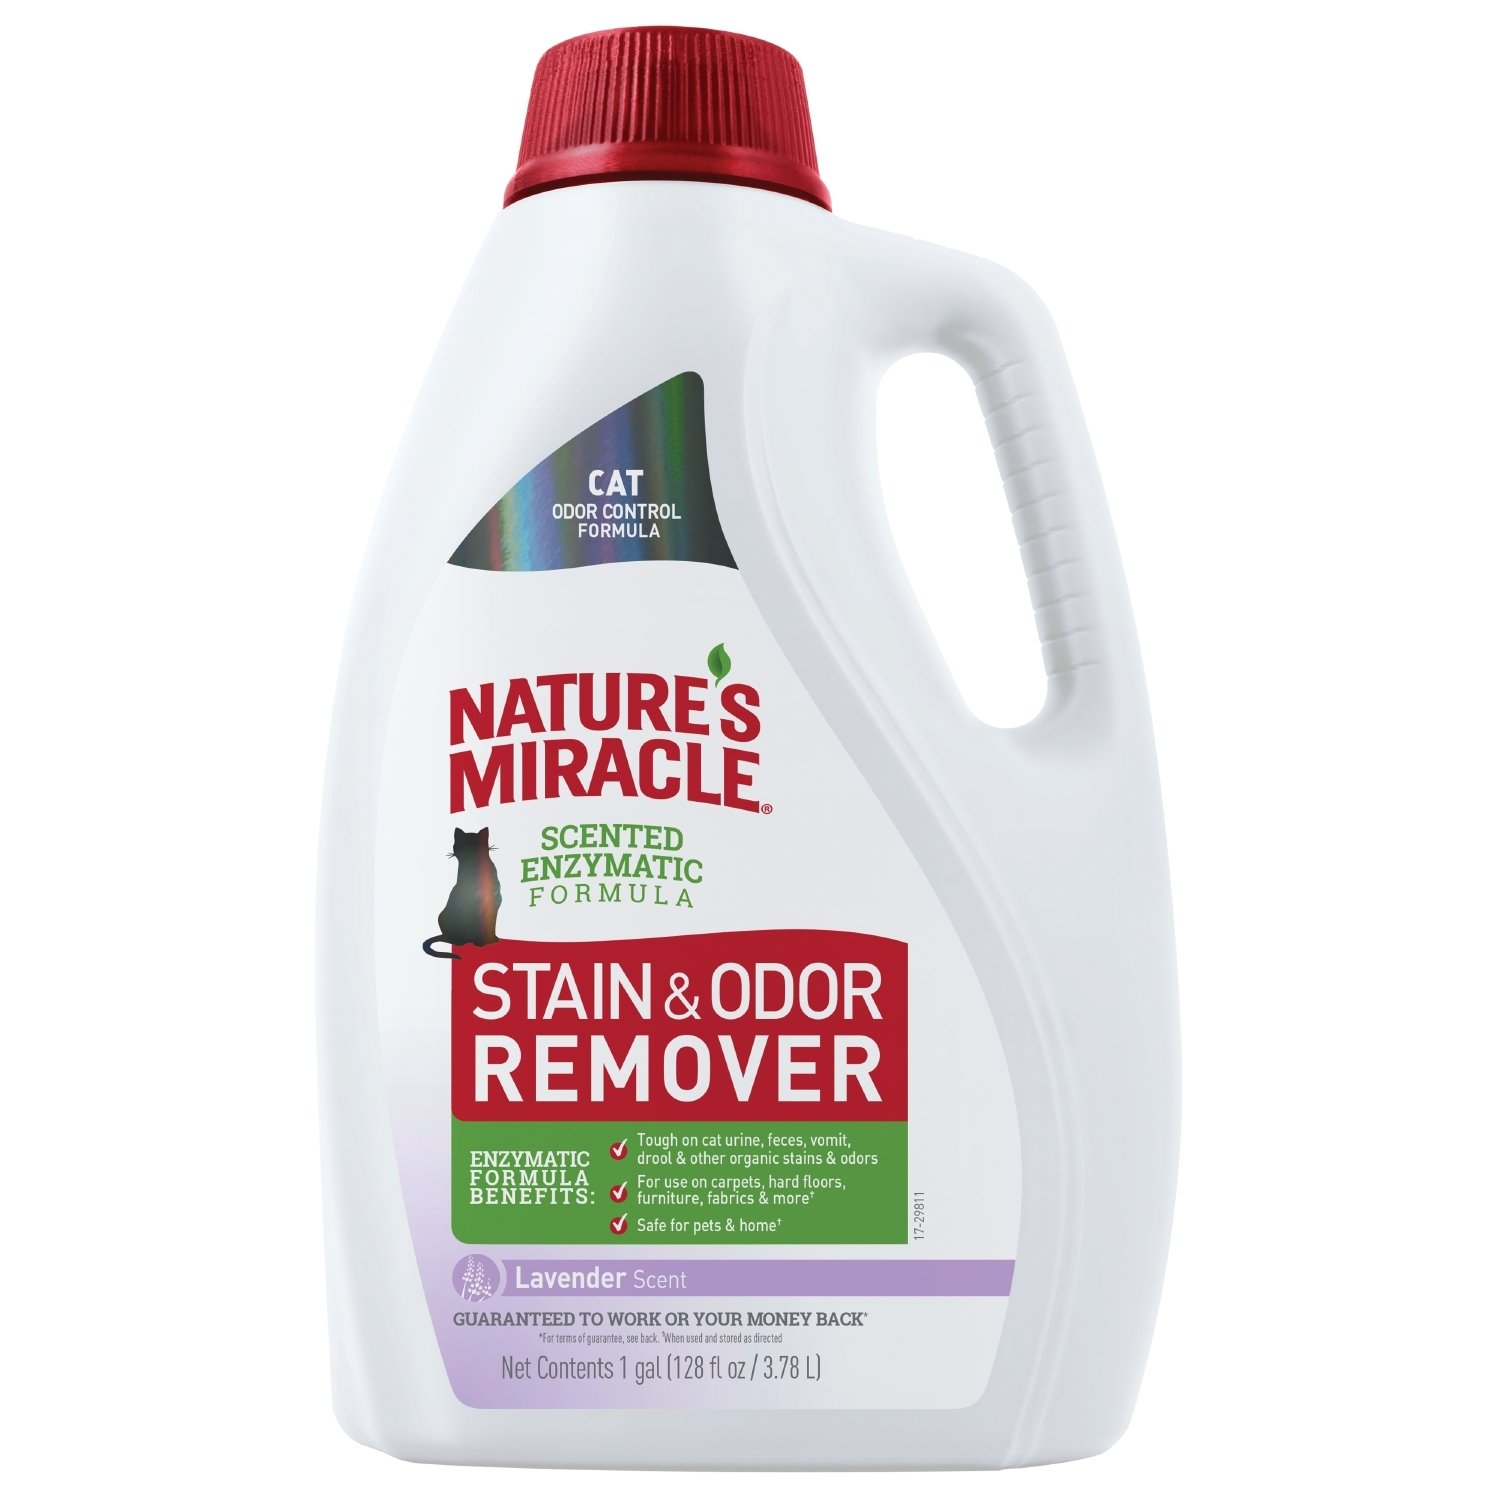 Nature's Miracle Cat Stain and Odor Remover, 128 fl oz, Lavender Scent, Enzymatic Formula for Urine Stains, Feces Stains, Vomit Stains and Drool Stains, Odor Control by Nature's Miracle